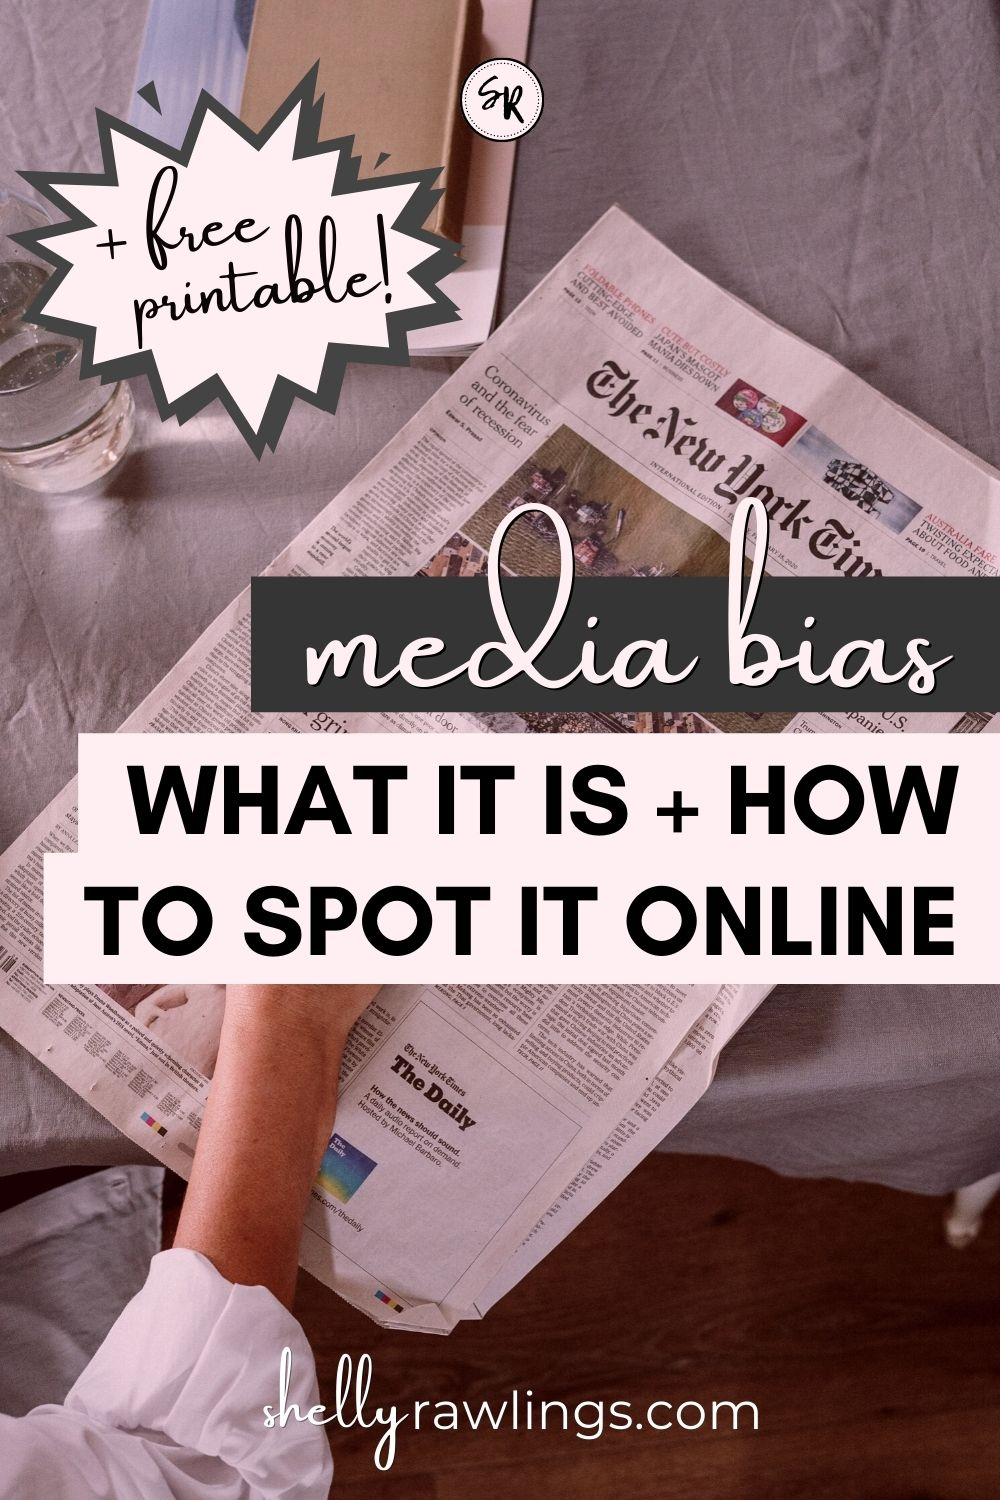 What Is Media Bias? | 5 Questions To Help You Identify Bias in a News Story